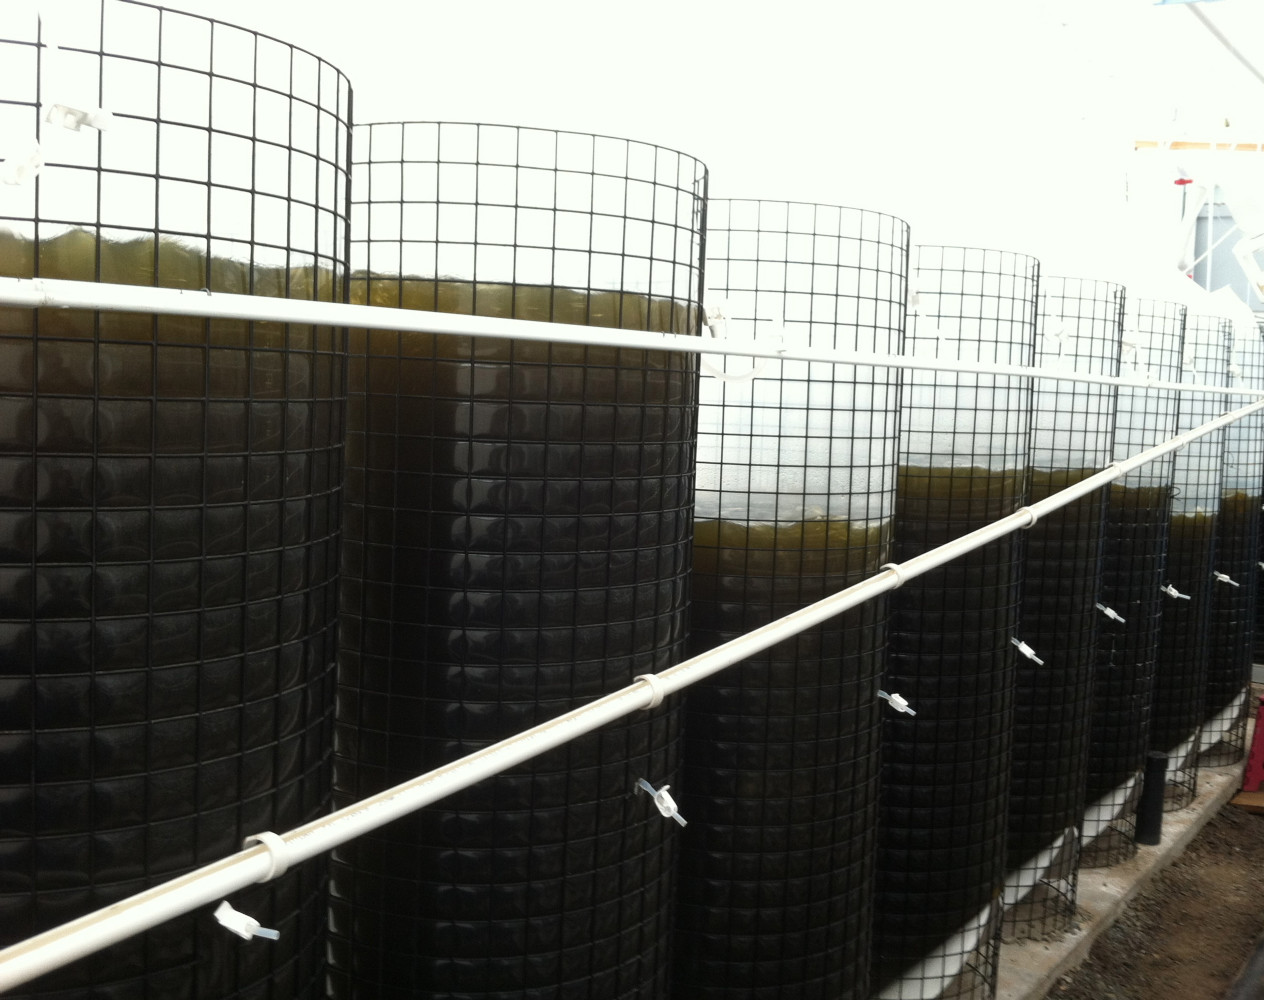 SEACAPS IS A COMPLETELY INTEGRATED SYSTEM THAT REDUCES UP TO 90% OF TRADITIONAL ALGAE CULTURE COSTS